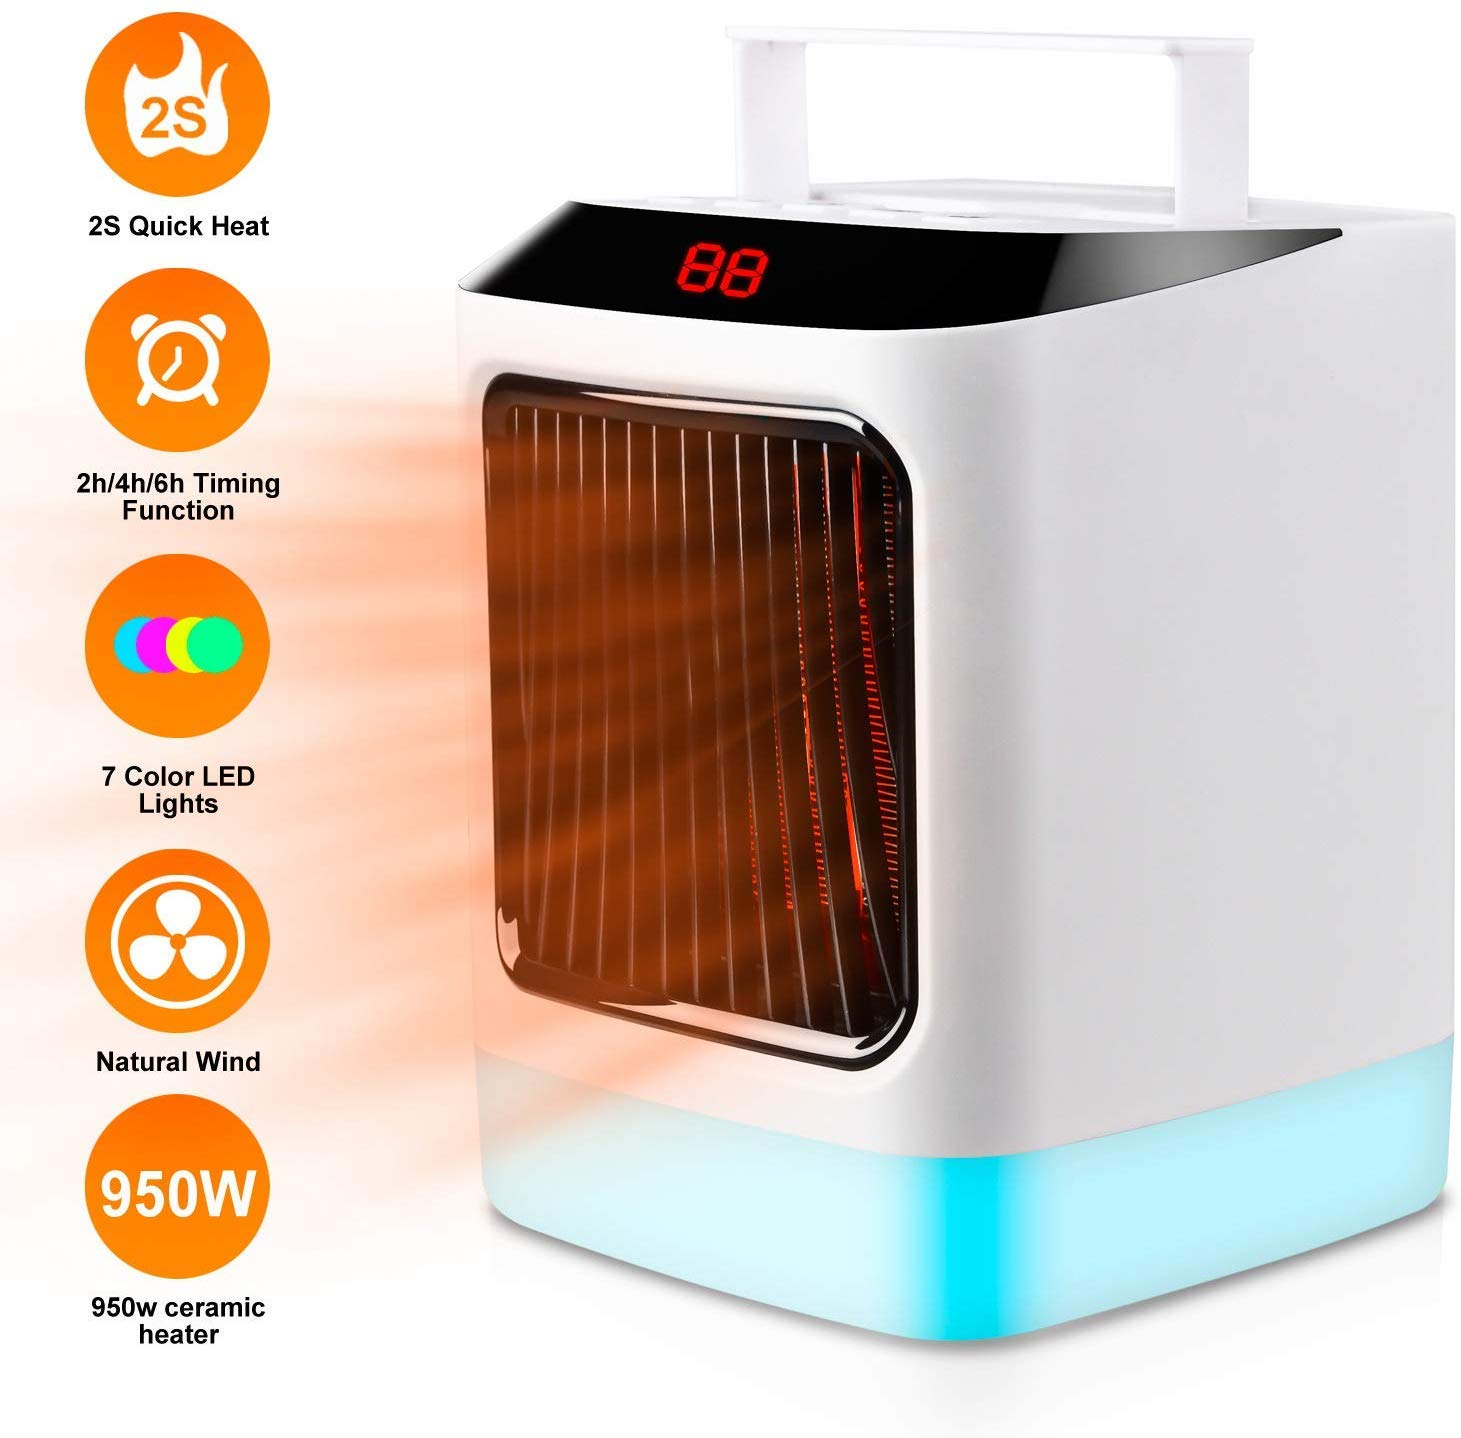 KKcite Electric Space Heater, Electric Mini Air Heater, PTC Ceramic Personal 950w Fan Heater with Over-heat & Tip-over Protection for Home and Office, with 7 Colorful Led Lights-White